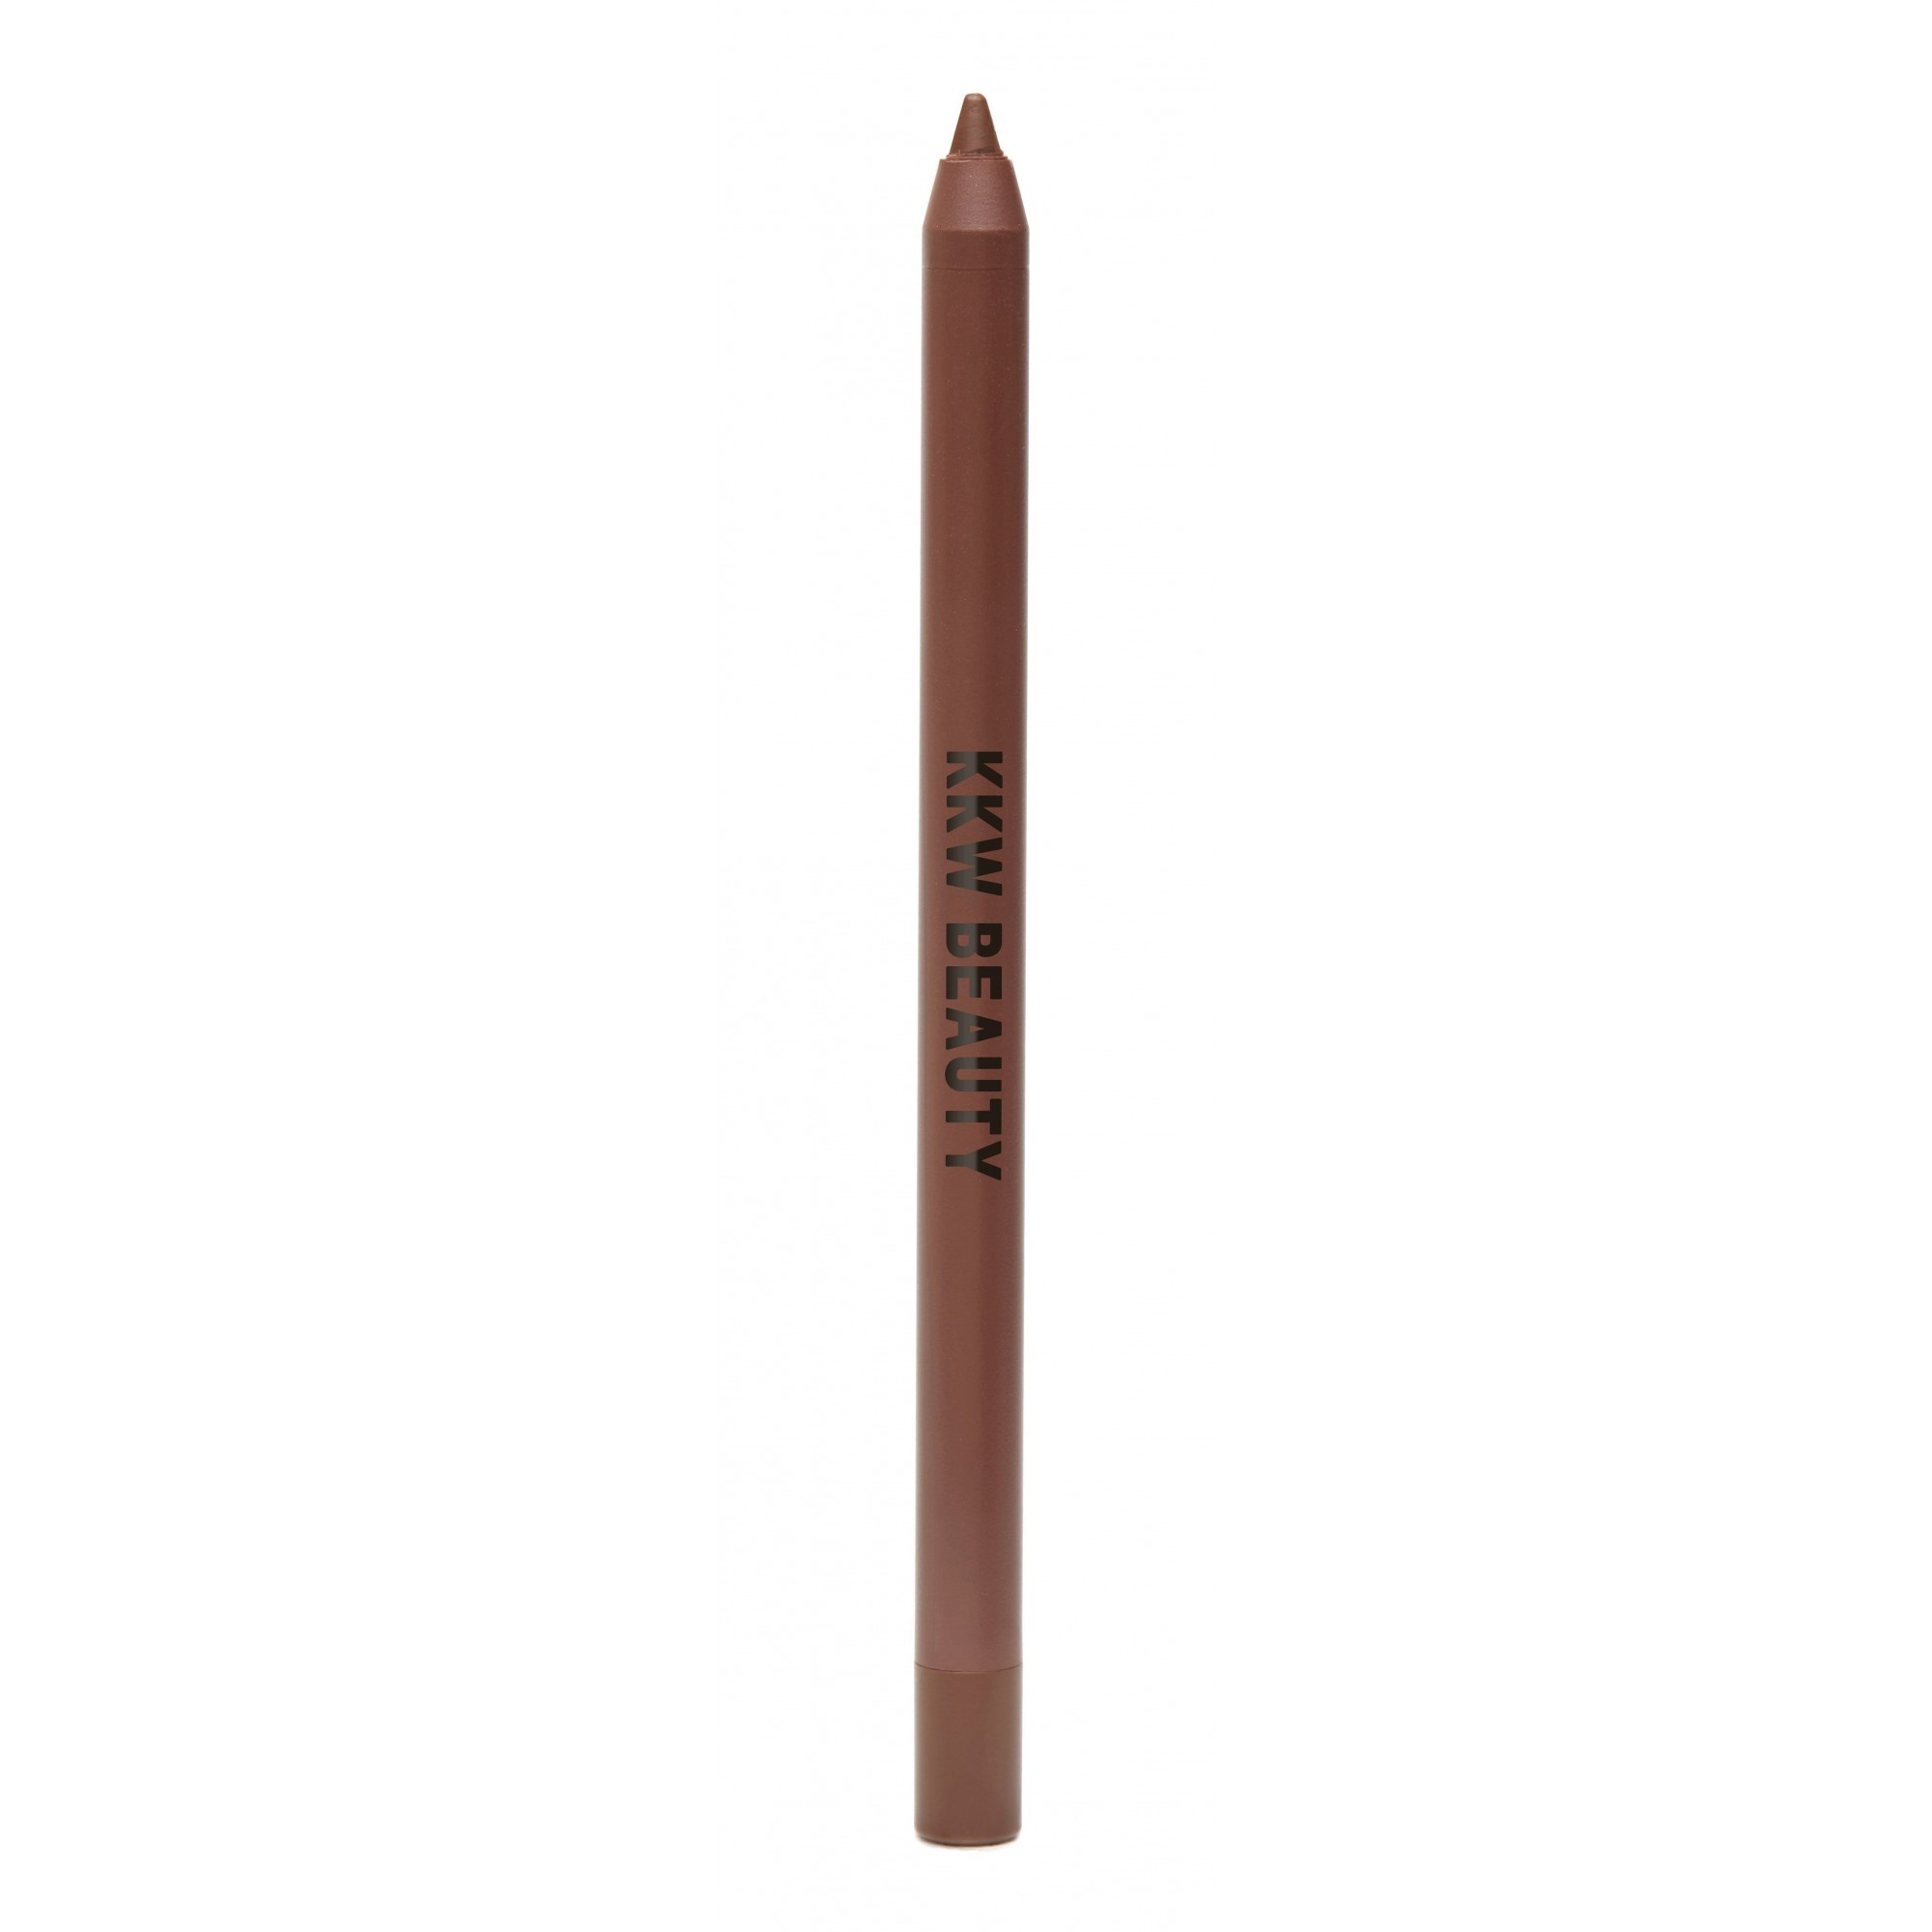 KKW Beauty Cocoa Eyeliner - The Mattes Collection Brown